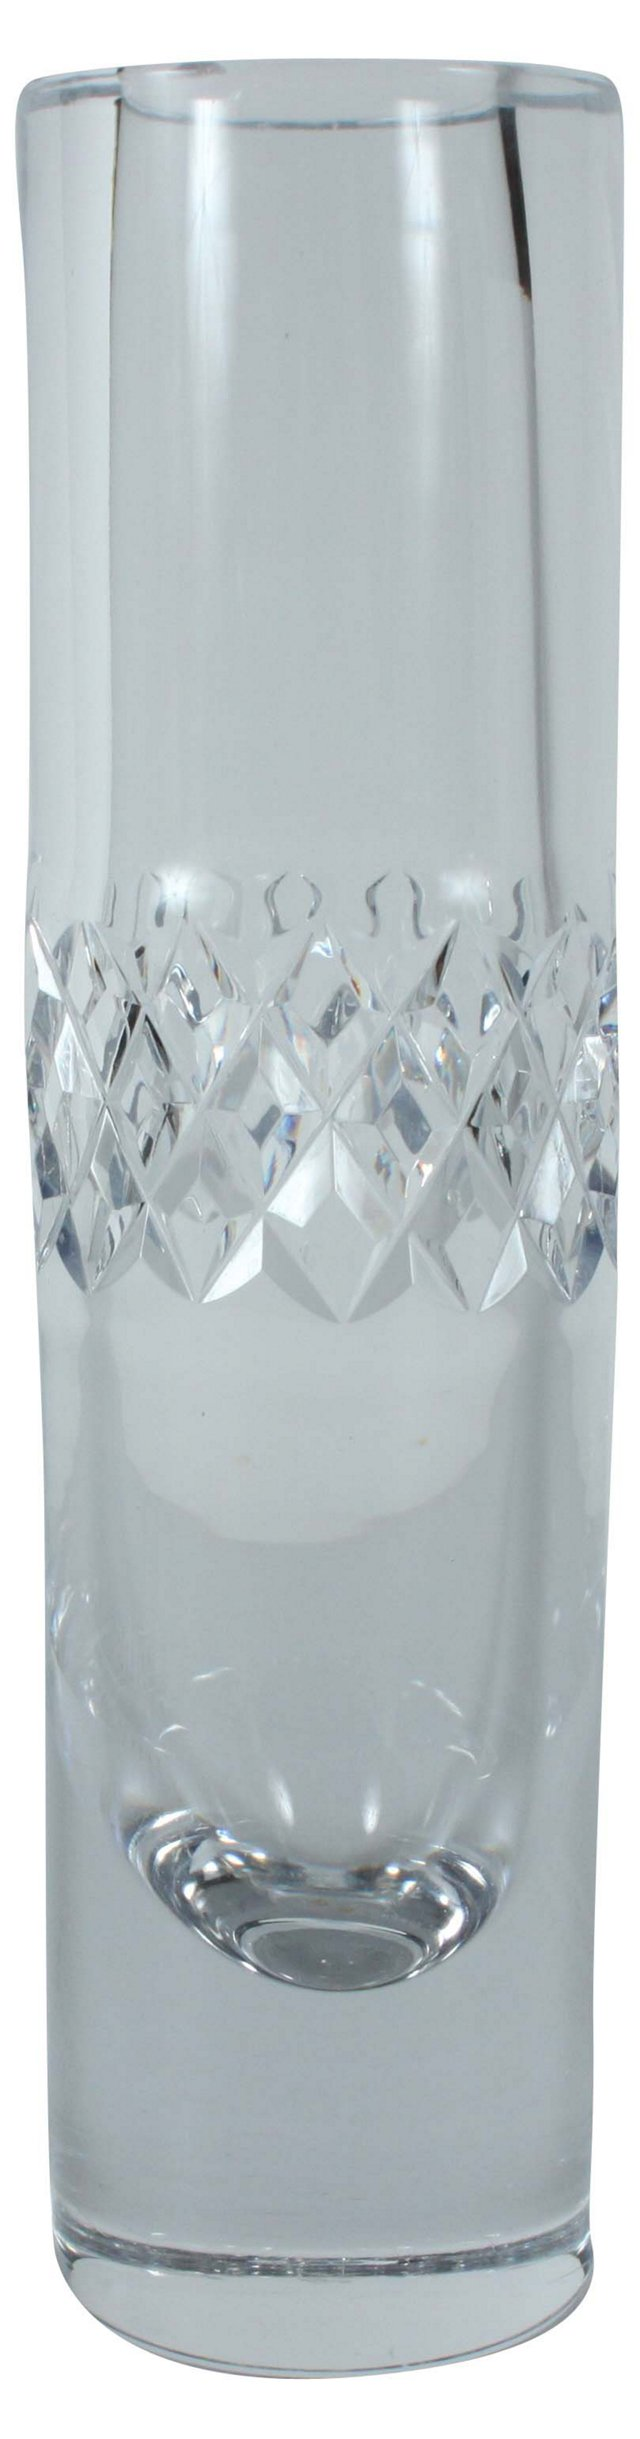 Cut-Glass Vase